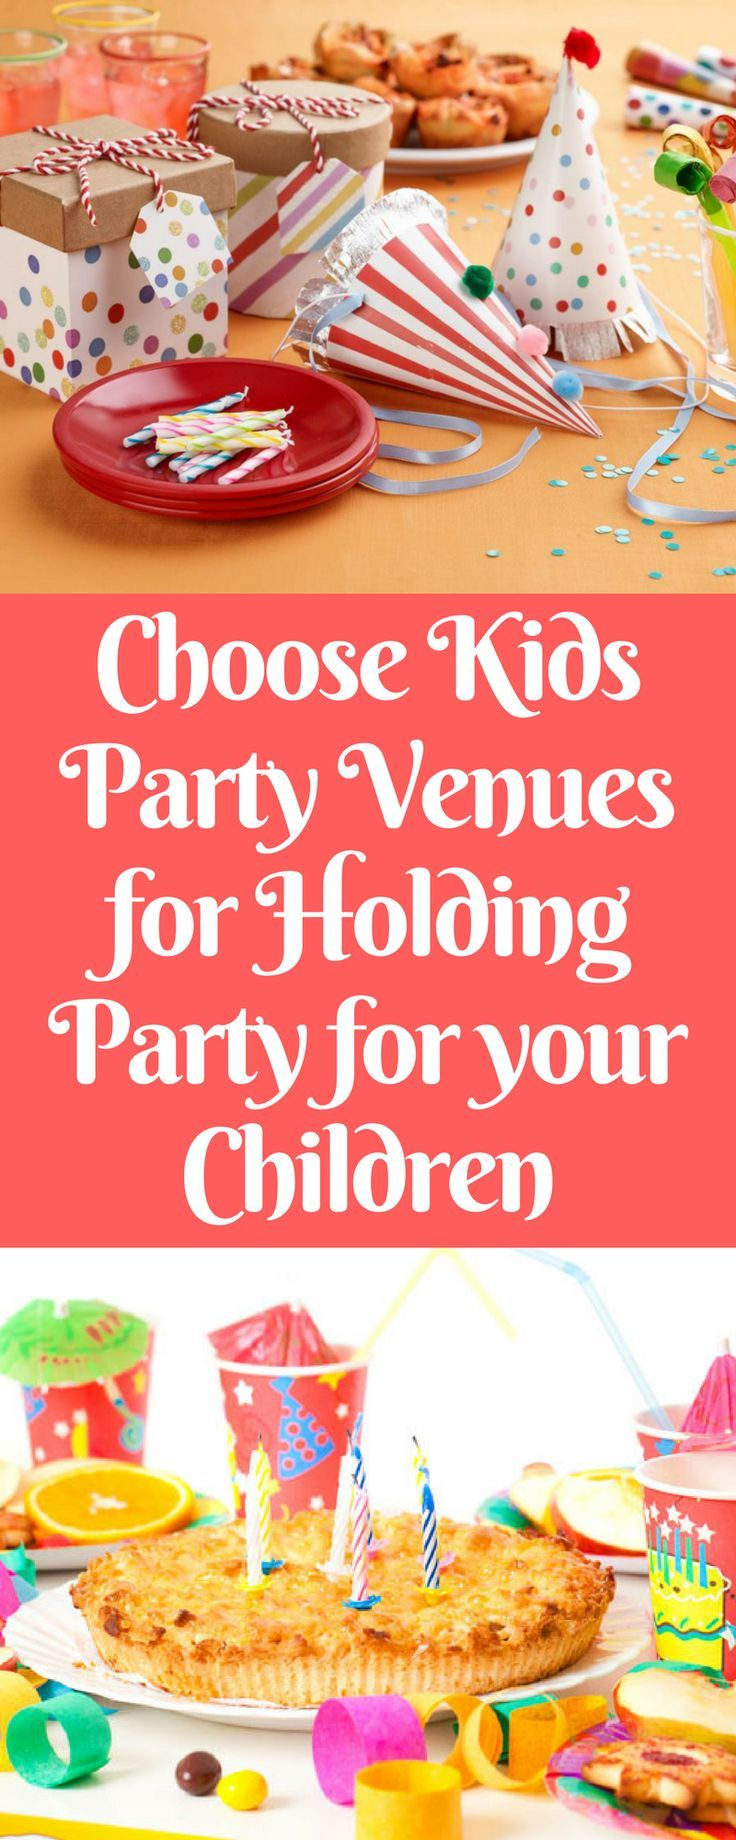 25 unique kids party venues ideas on pinterest kids for Craft birthday party places